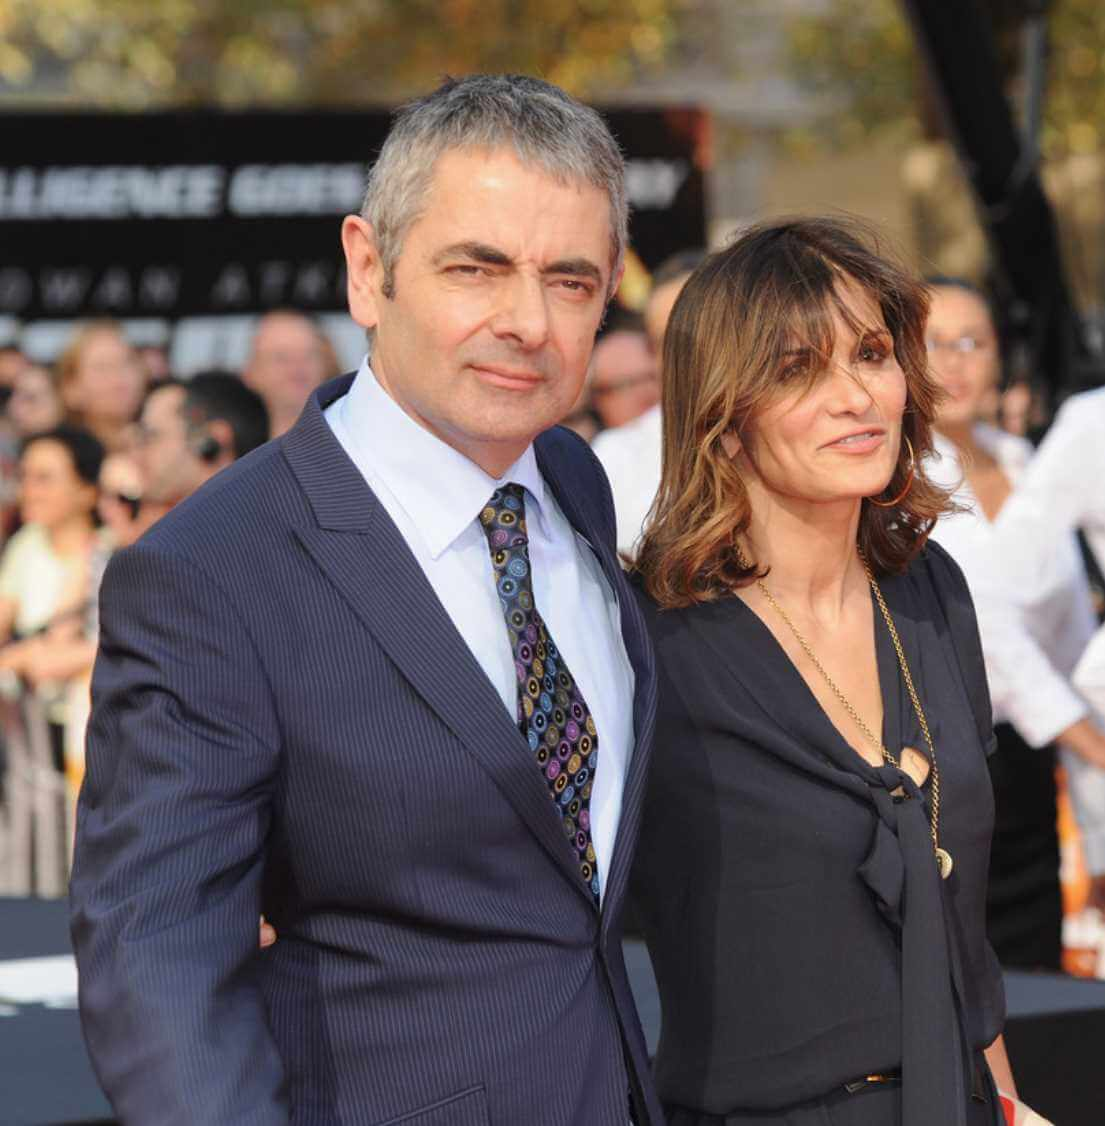 Mr. Bean with her Wife Photo